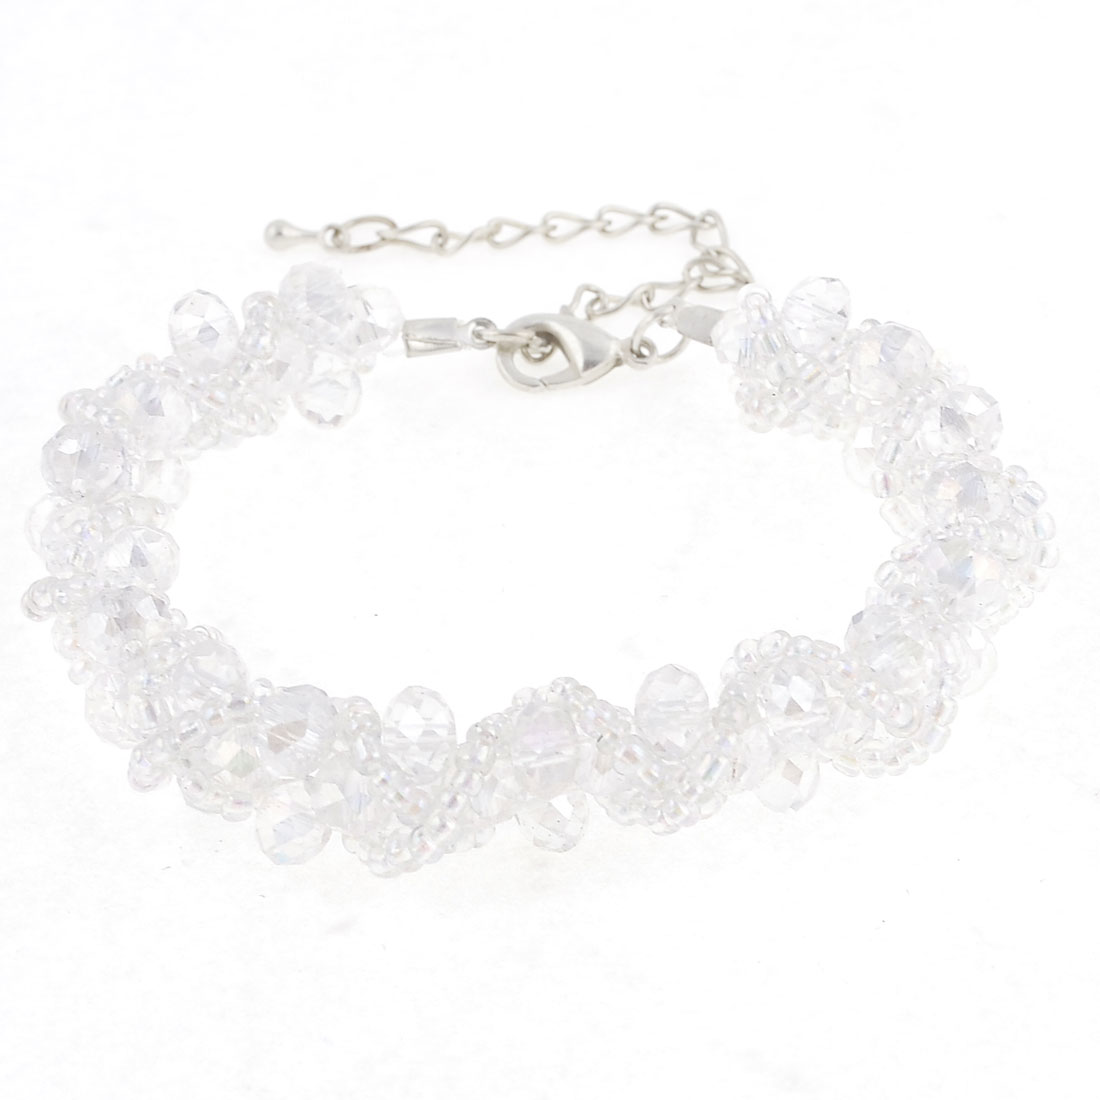 Jewelry Clear White Bead Chain Bracelet Bangle Decor for Ladies